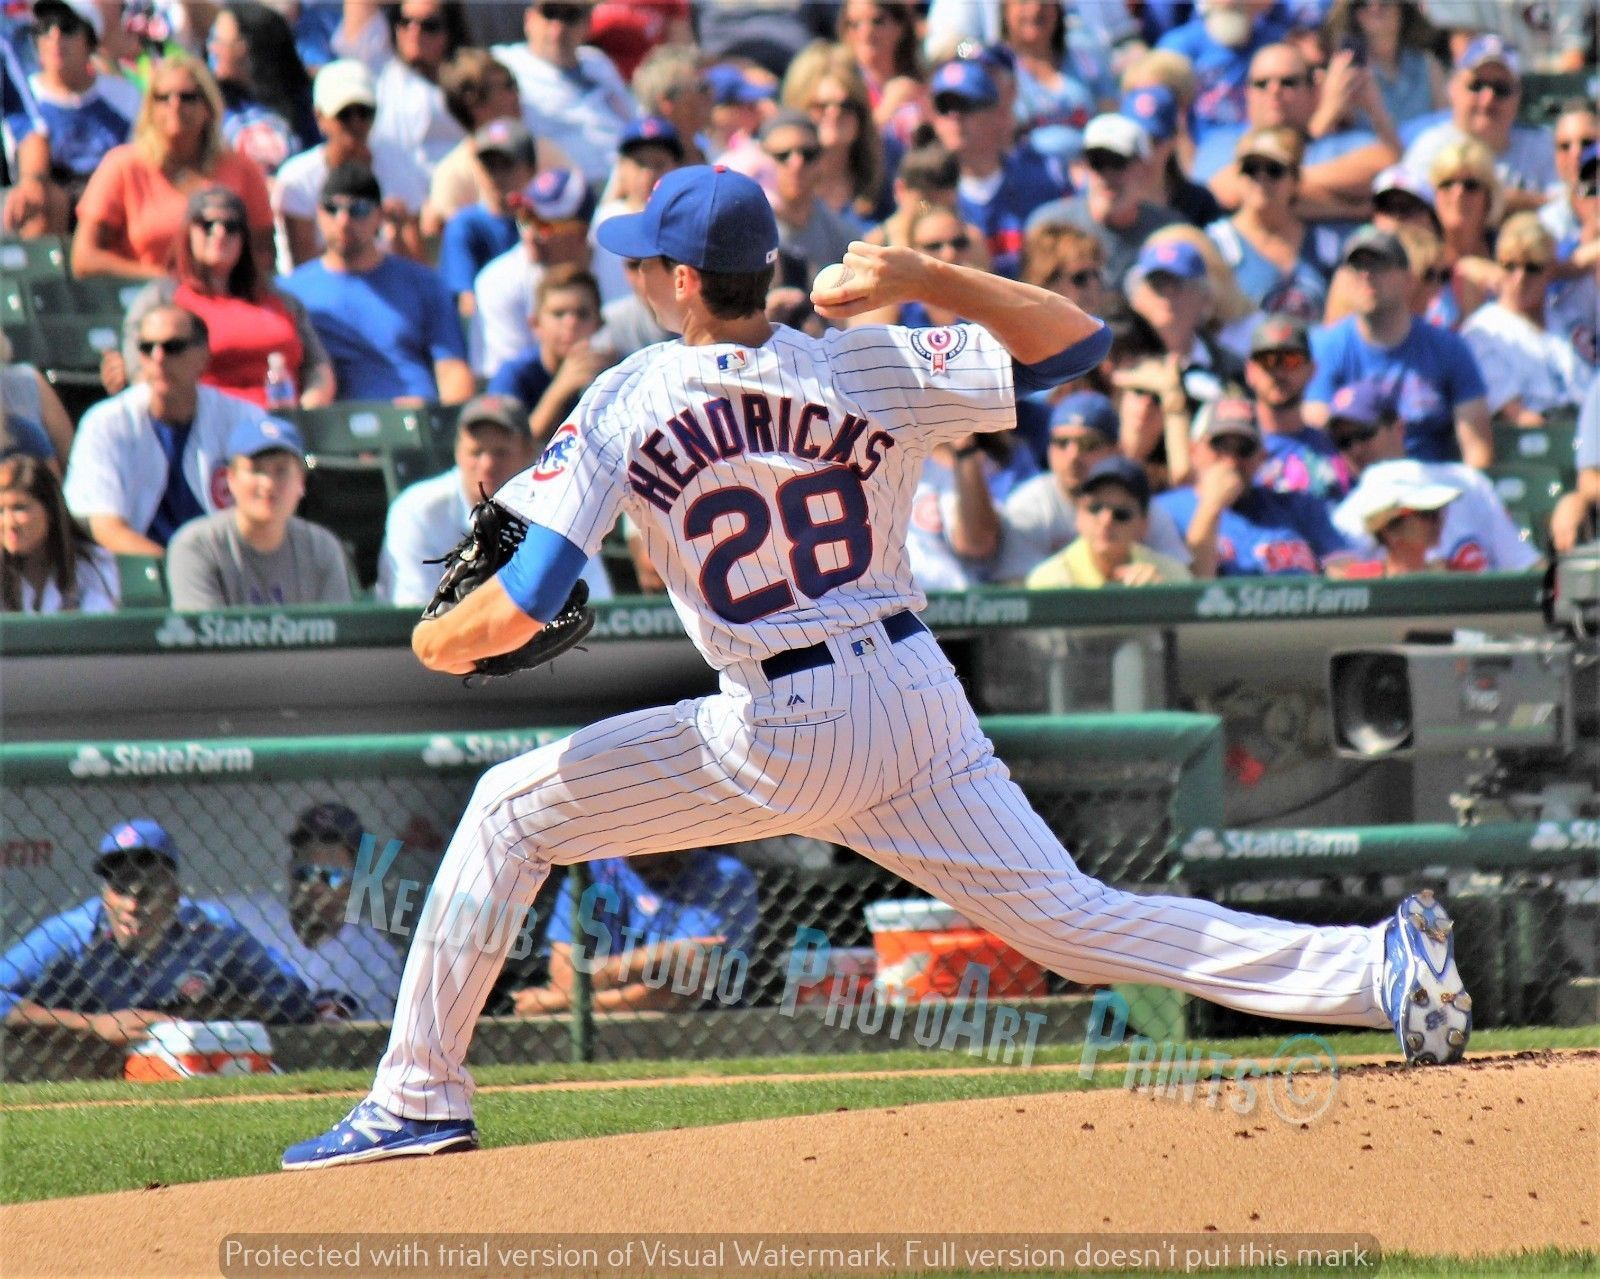 Primary image for Professor Chicago Cubs Kyle Hendricks Pitcher Original Game Pic Dartmouth NEW